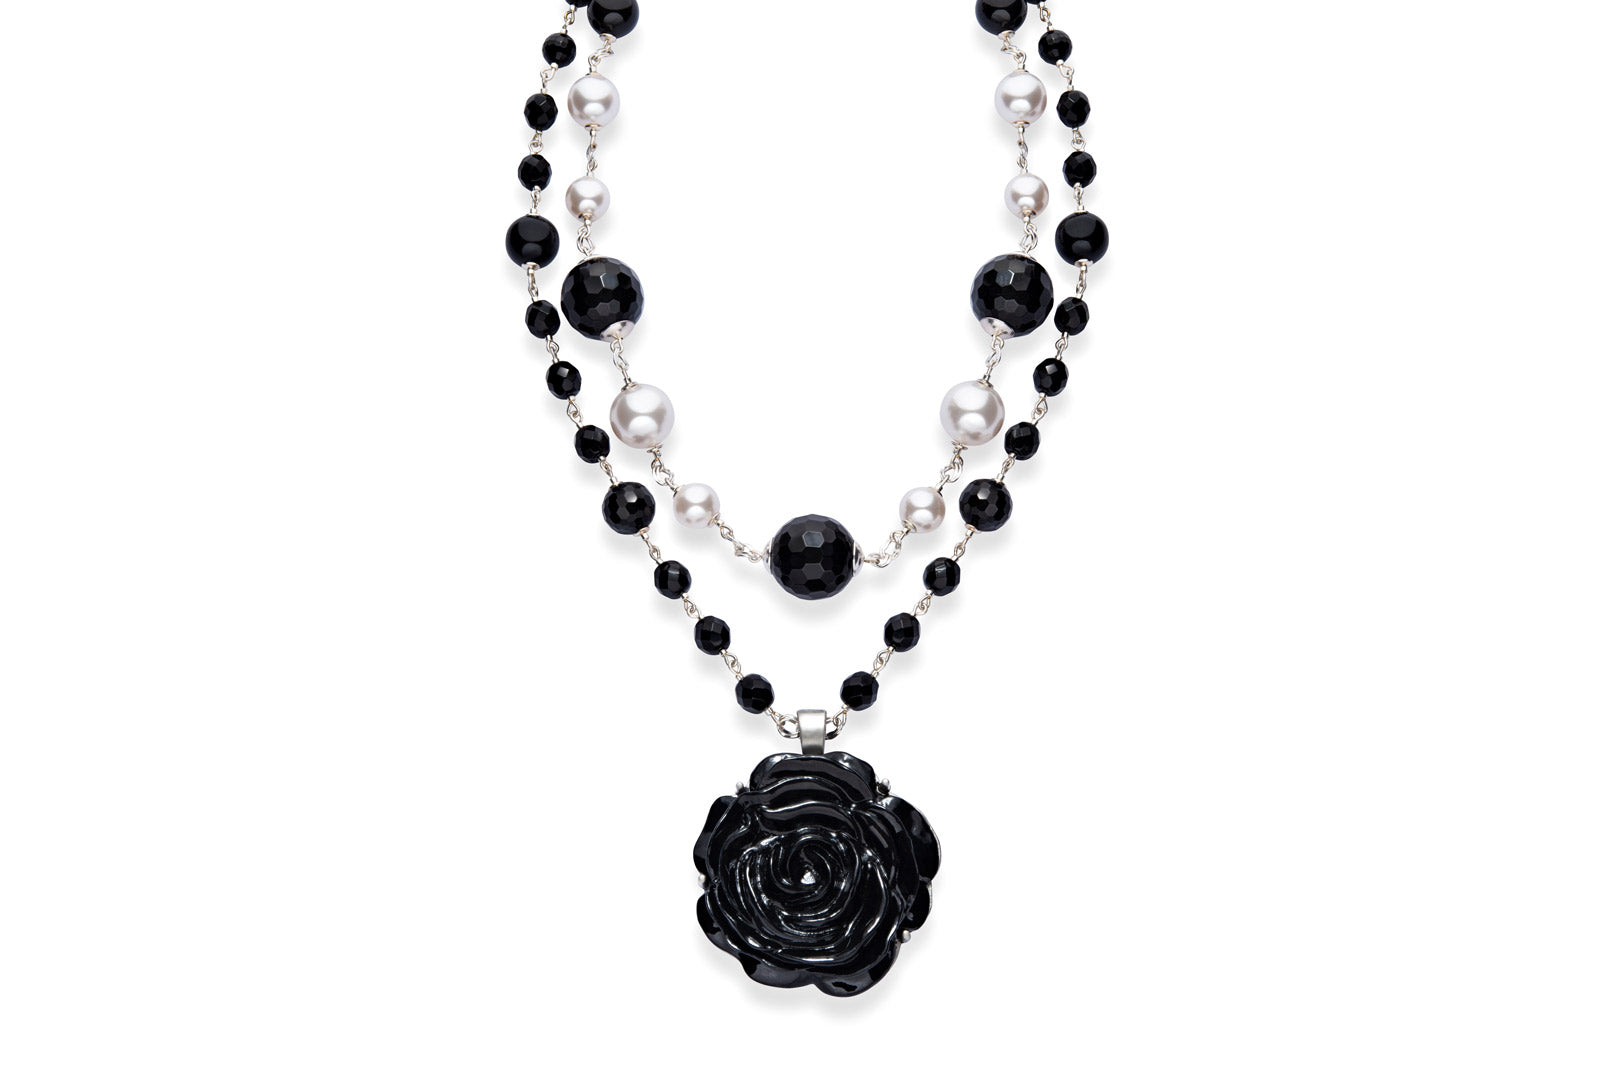 Statement necklace made from pearls, black onyx and a large black flower.